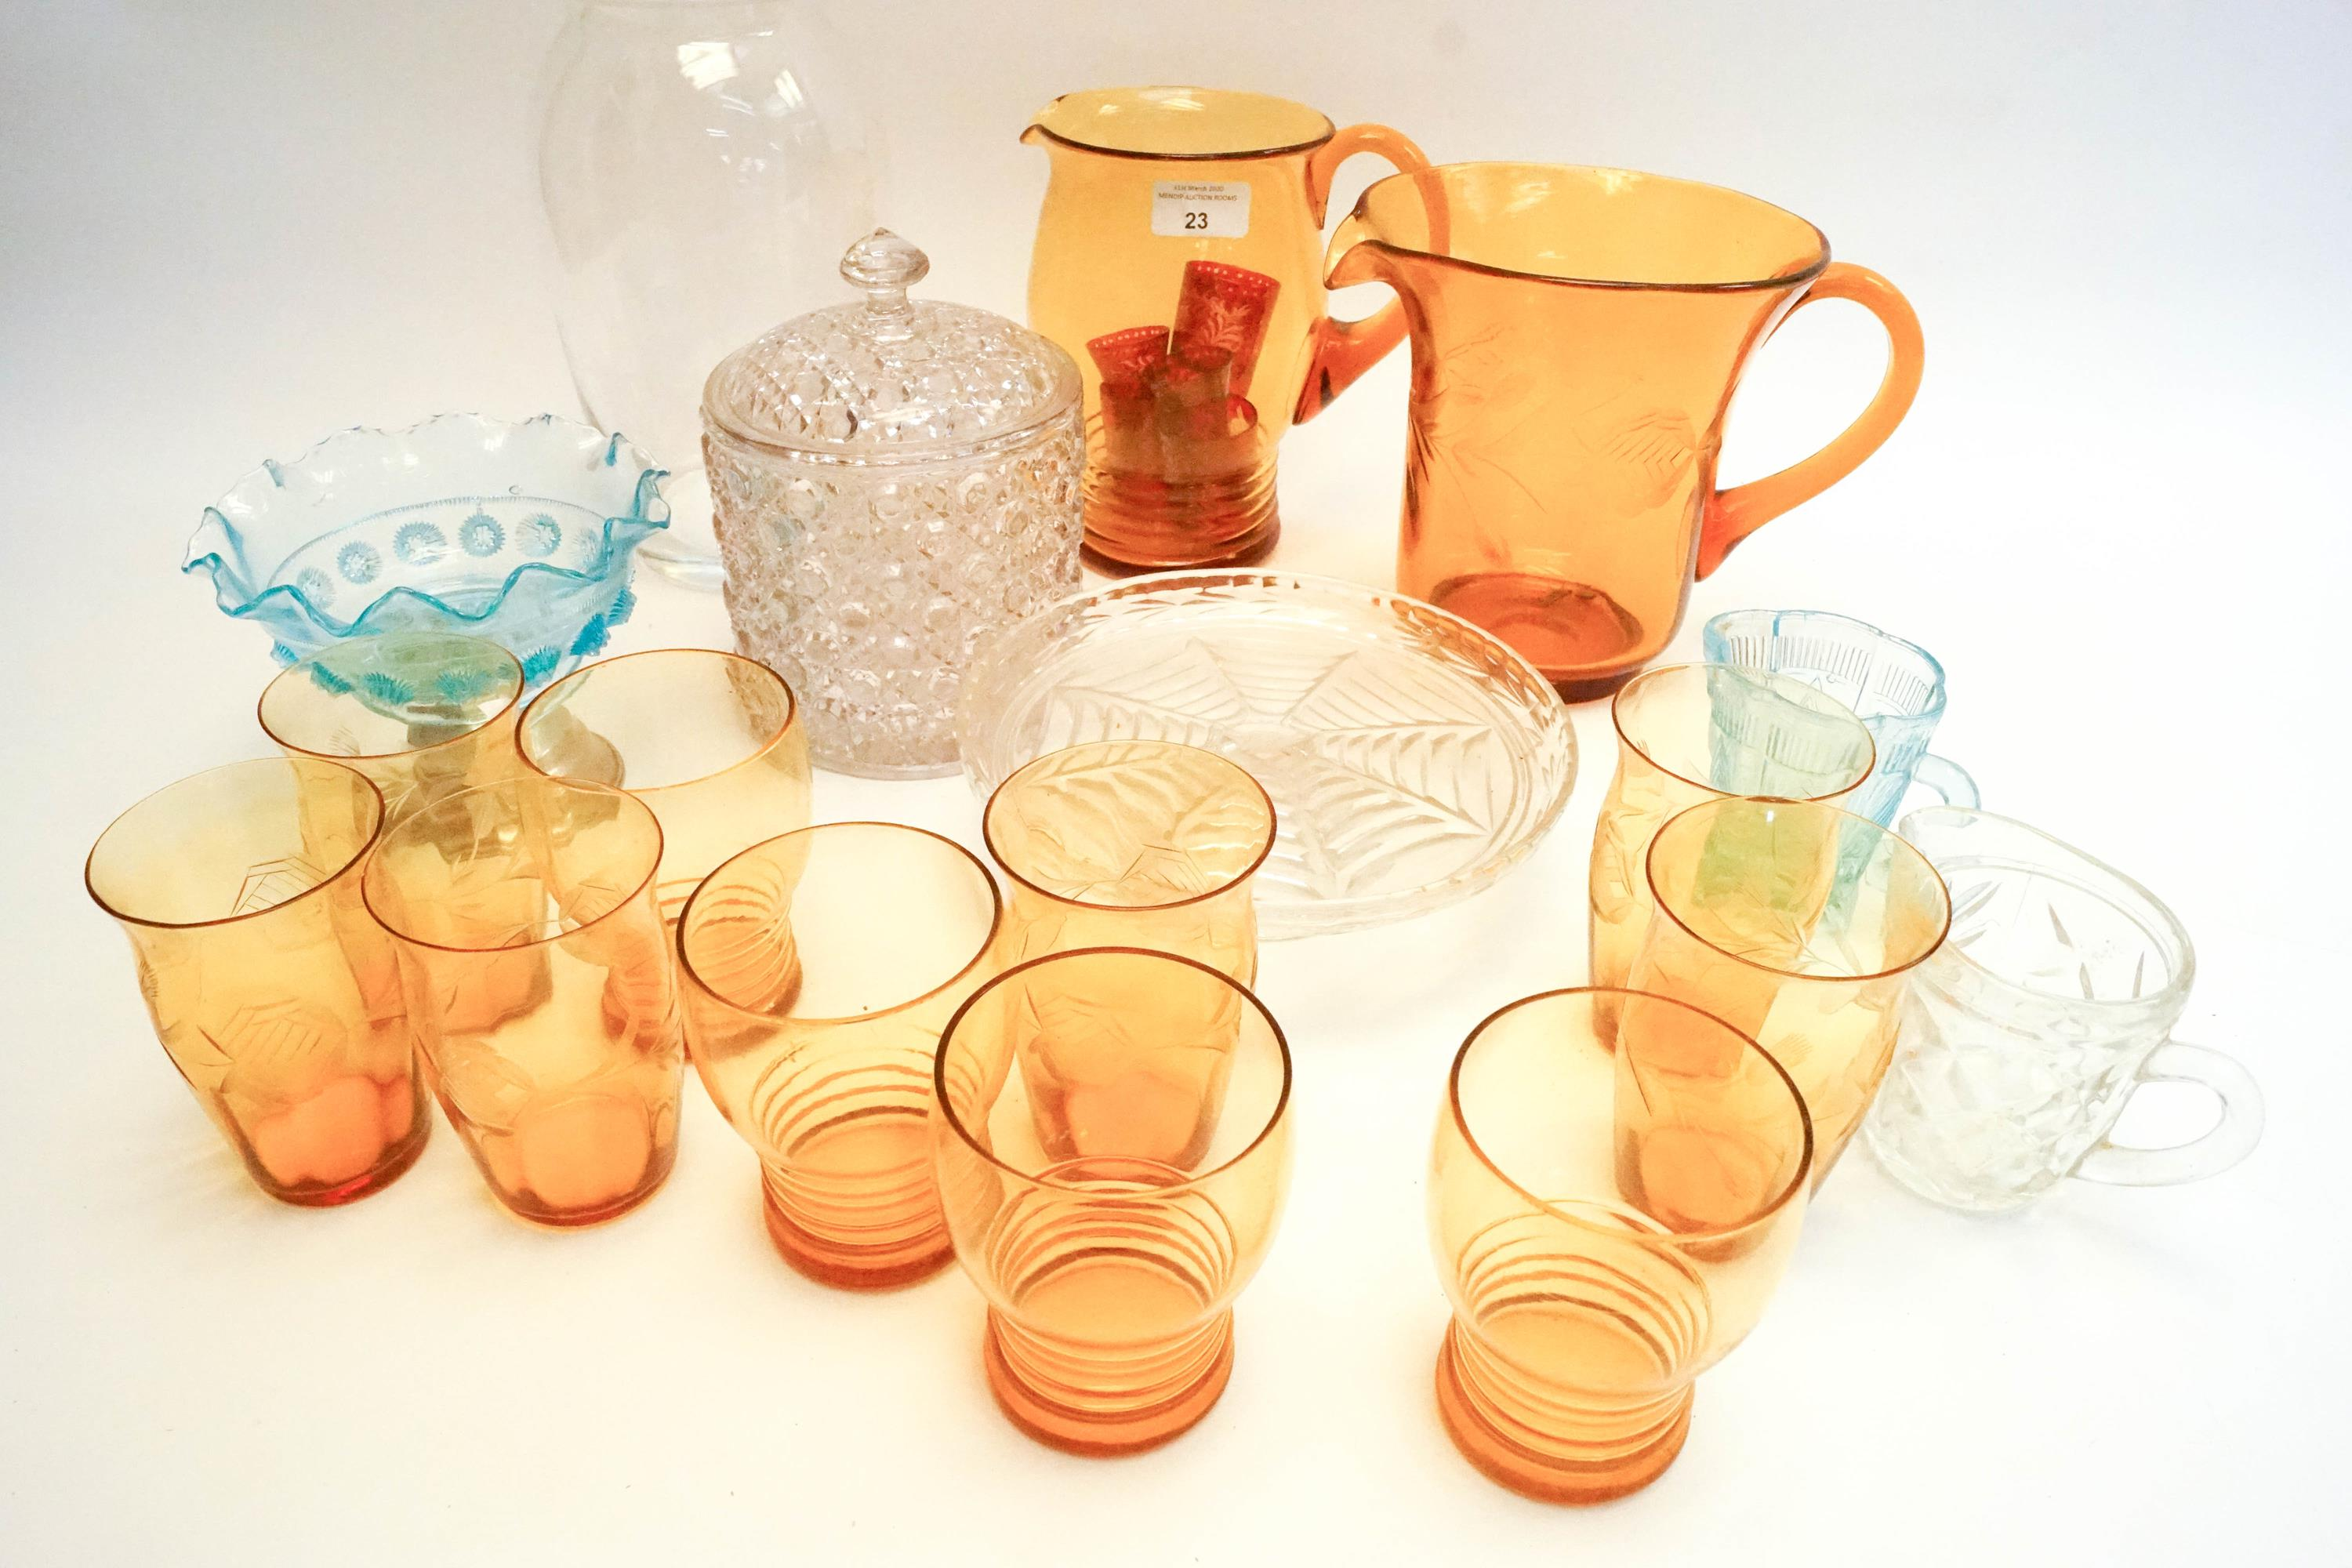 Lot 23 - A lemonade set and other glass